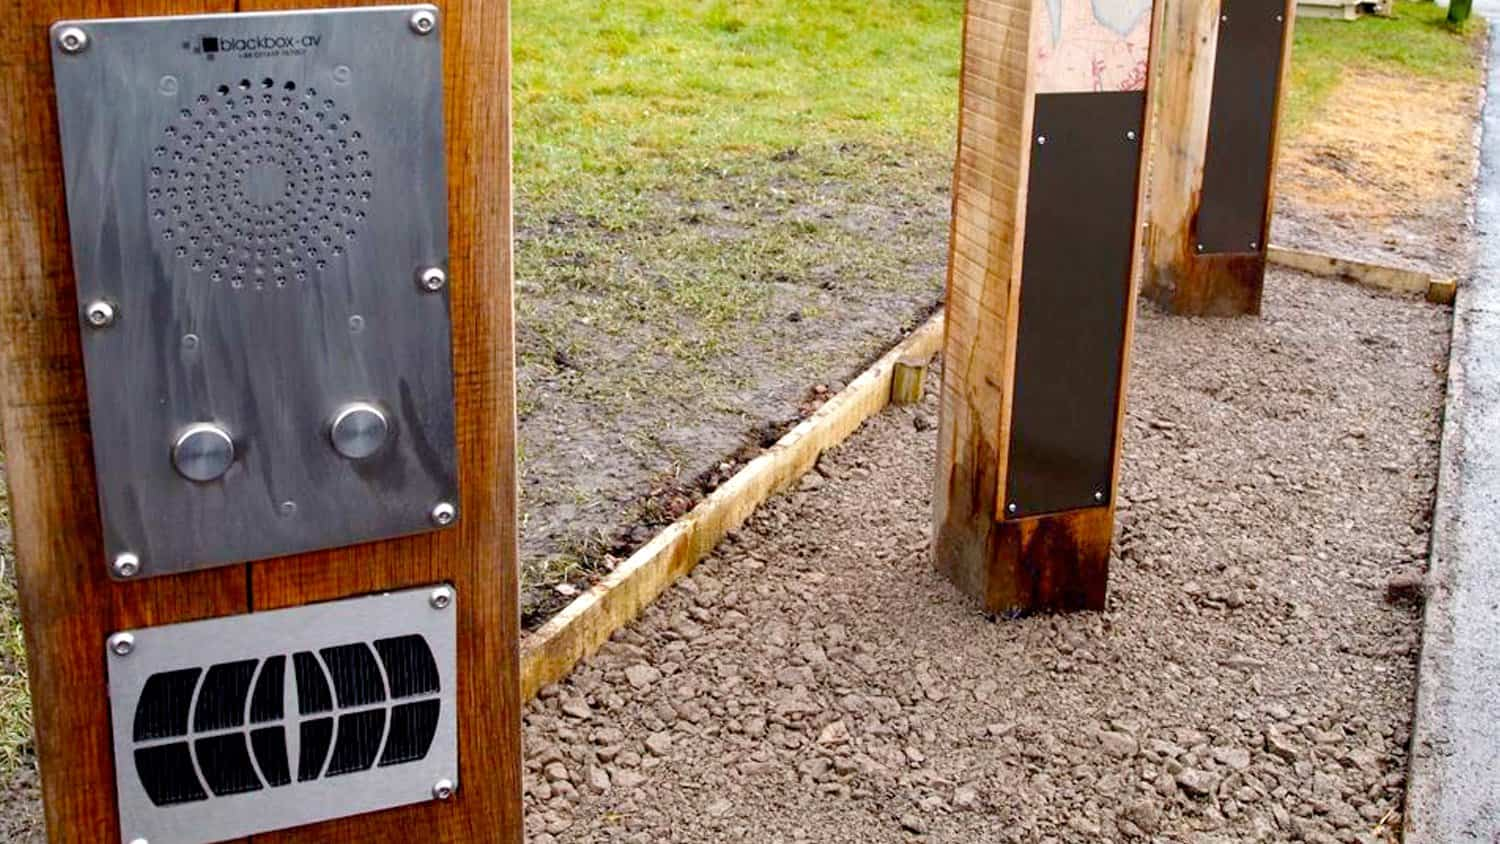 Close up of Solar Audio Post Electronics by Blackbox-av for Ebbw Fach Outdoor Trail